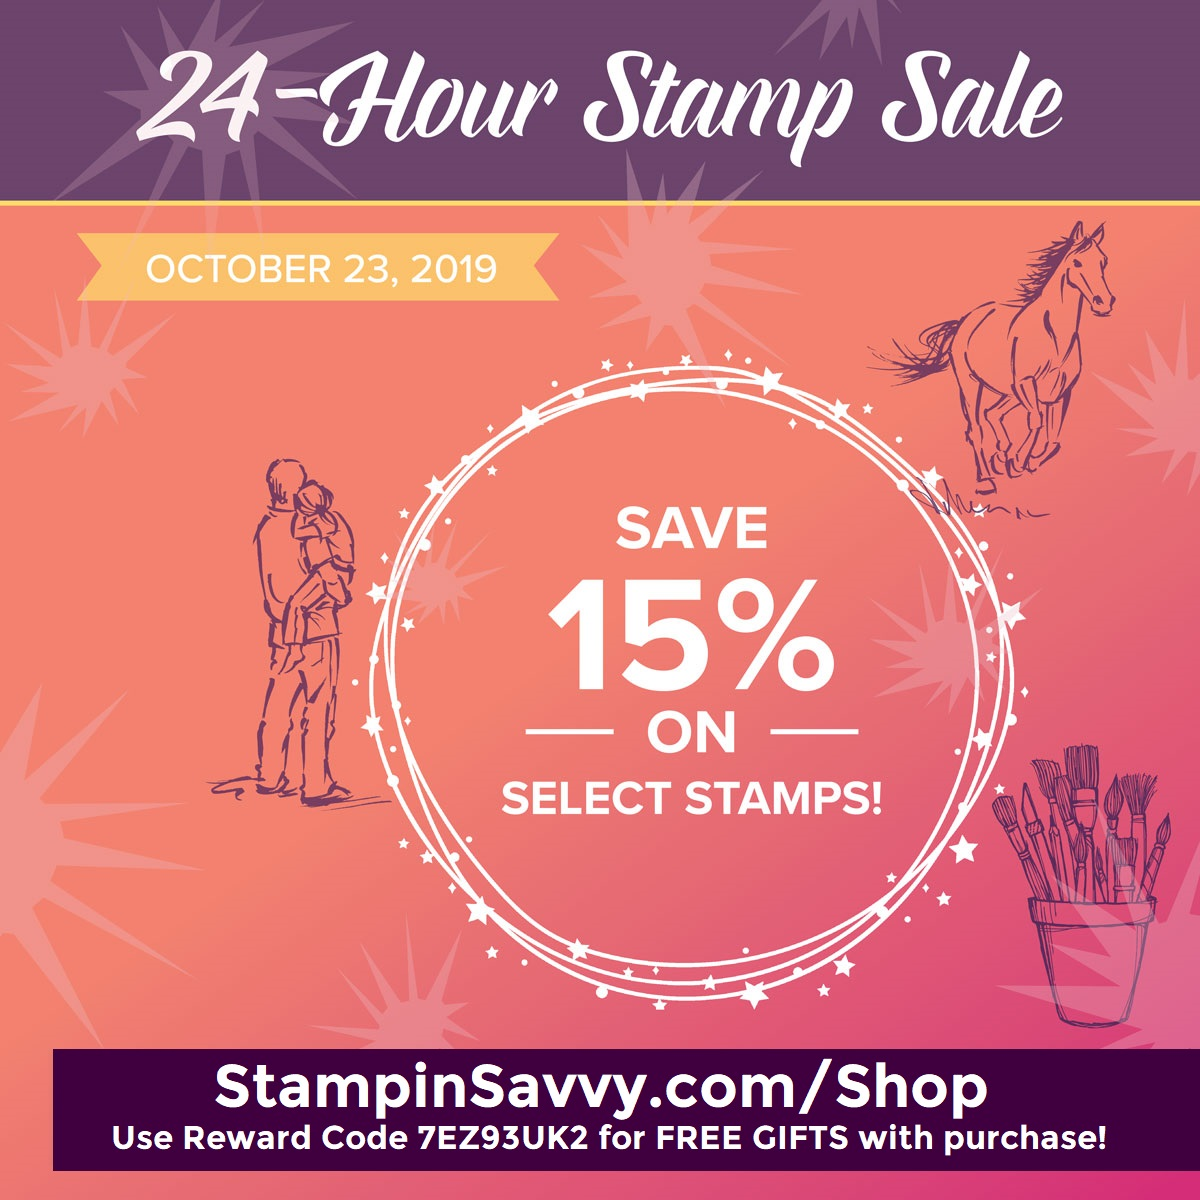 Stampin Up Flash Sale 10-23-2019